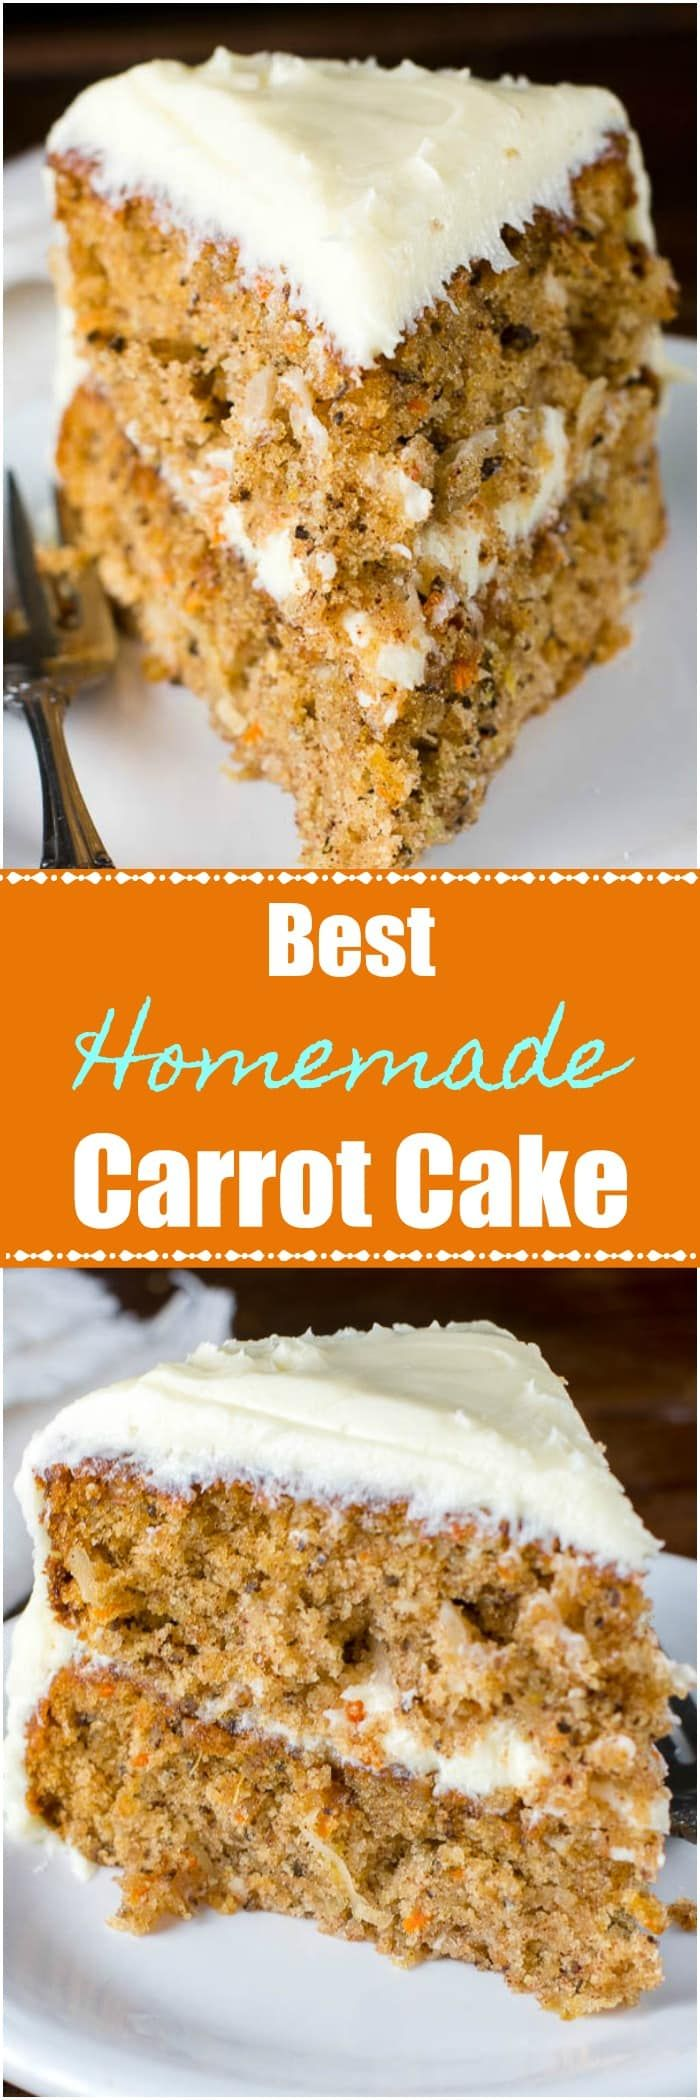 This is the Best Homemade Carrot Cake recipe because it is a sweet, moist, and denseCarrot Cake made from scratch with pineapple, coconut and pecans. When you want a dessert that everyone will love, make this cake! via @flavormosaic